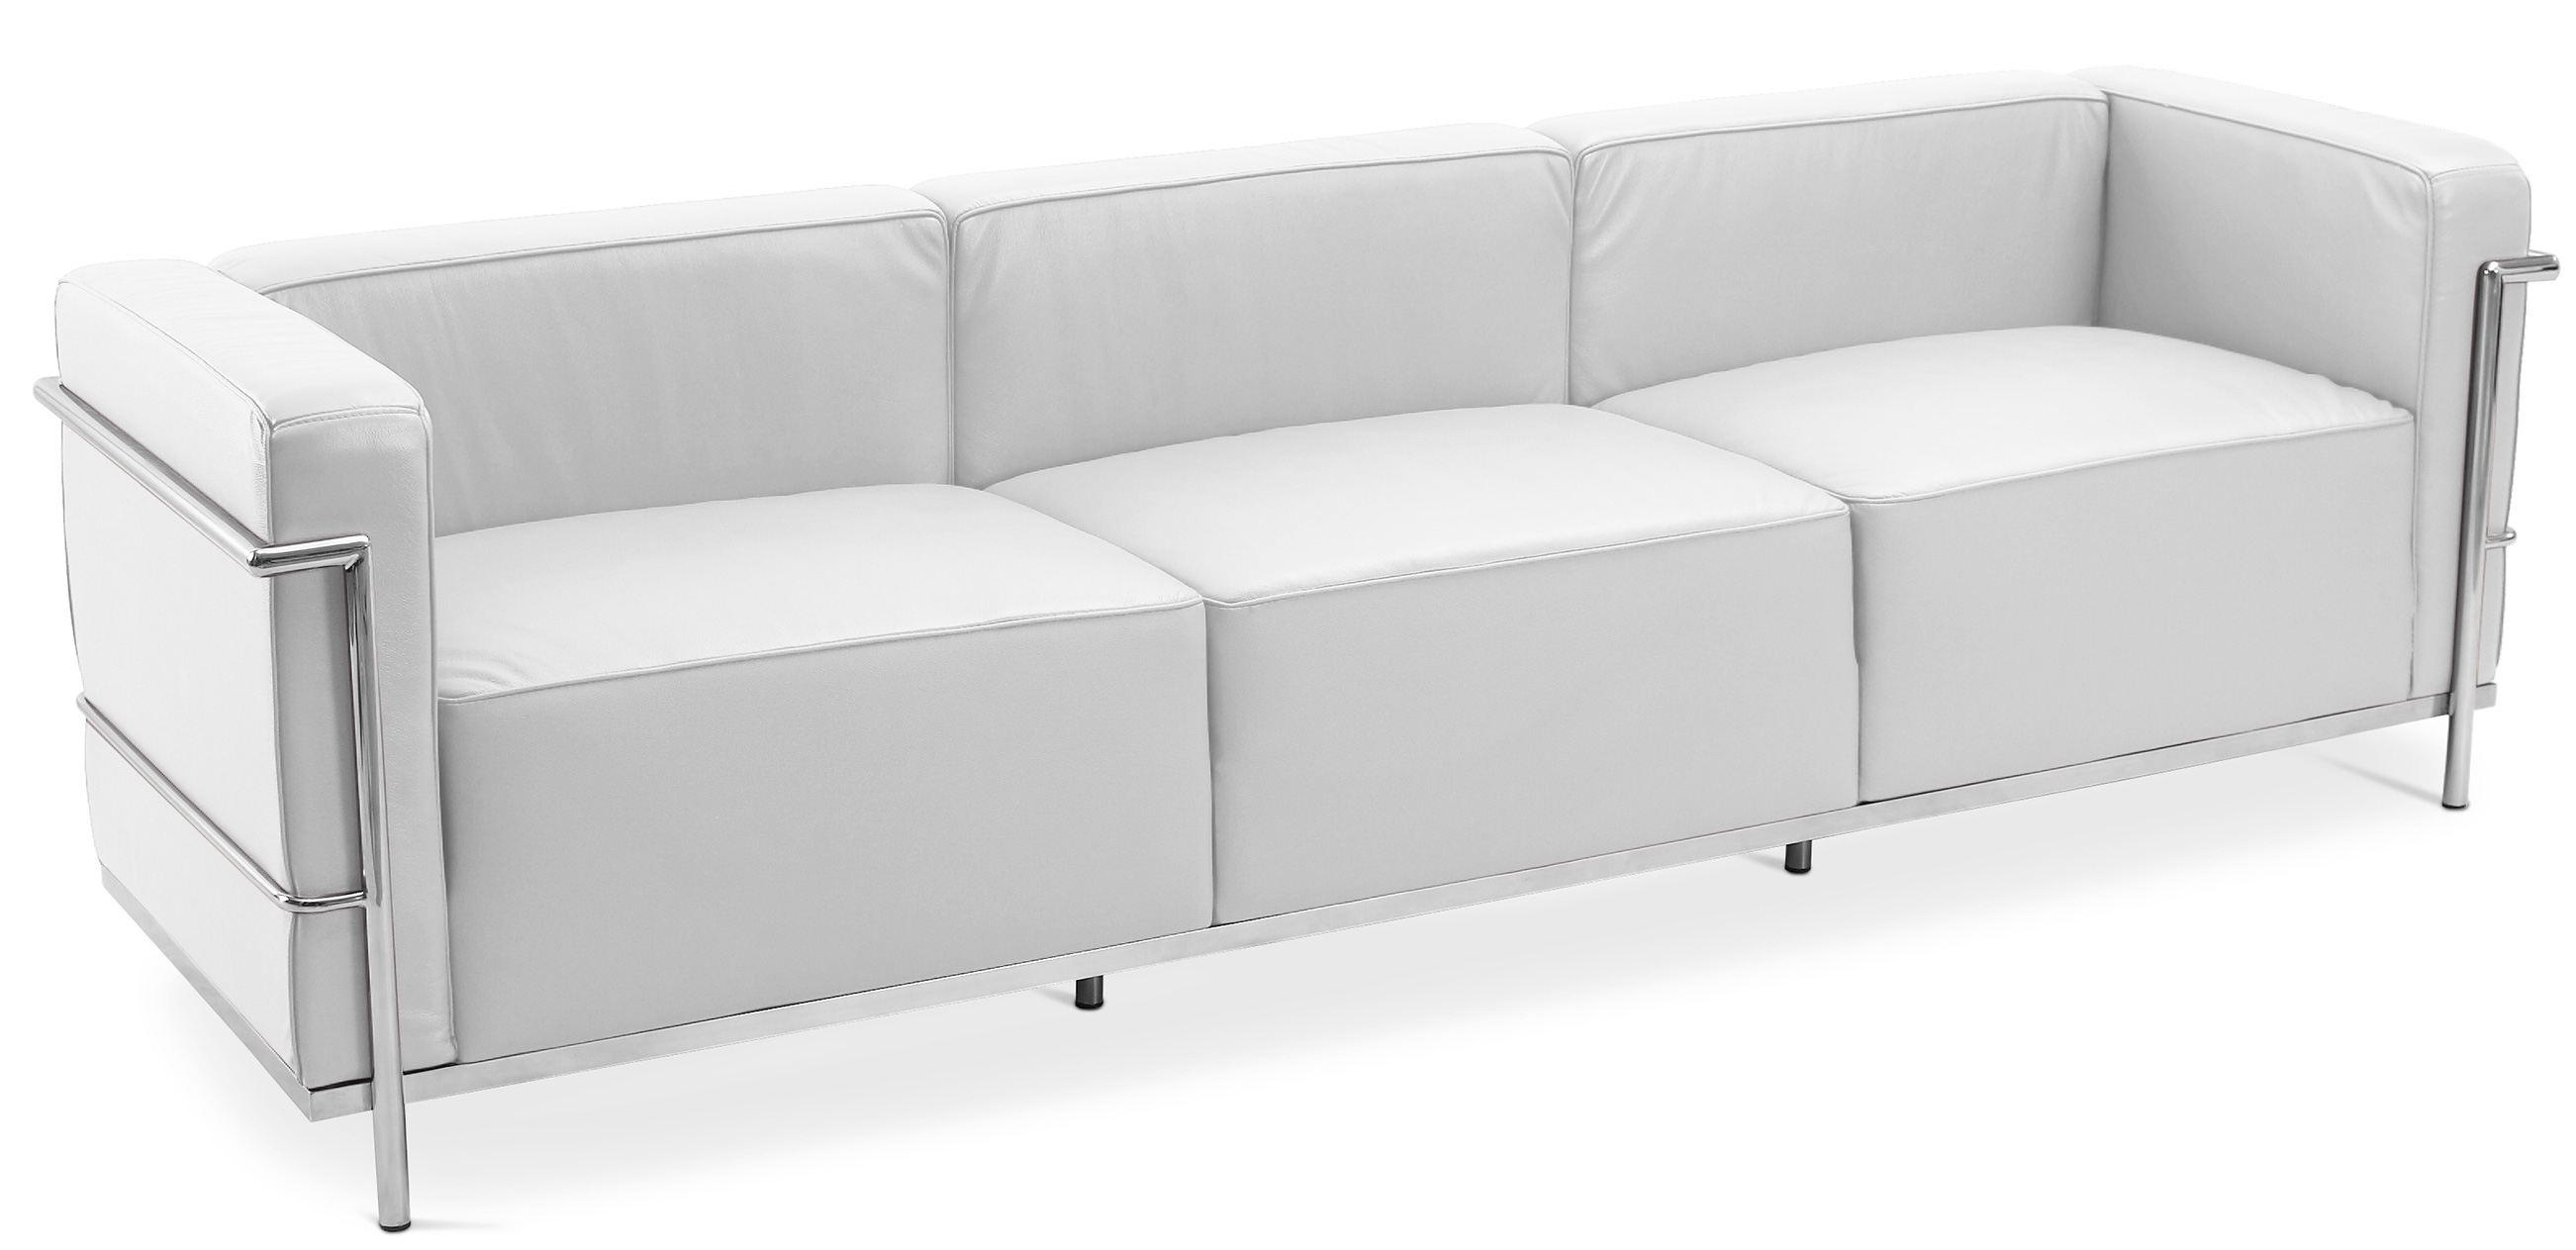 canap cuir premium blanc 4 places moderne inspir lc3 le corbusier. Black Bedroom Furniture Sets. Home Design Ideas